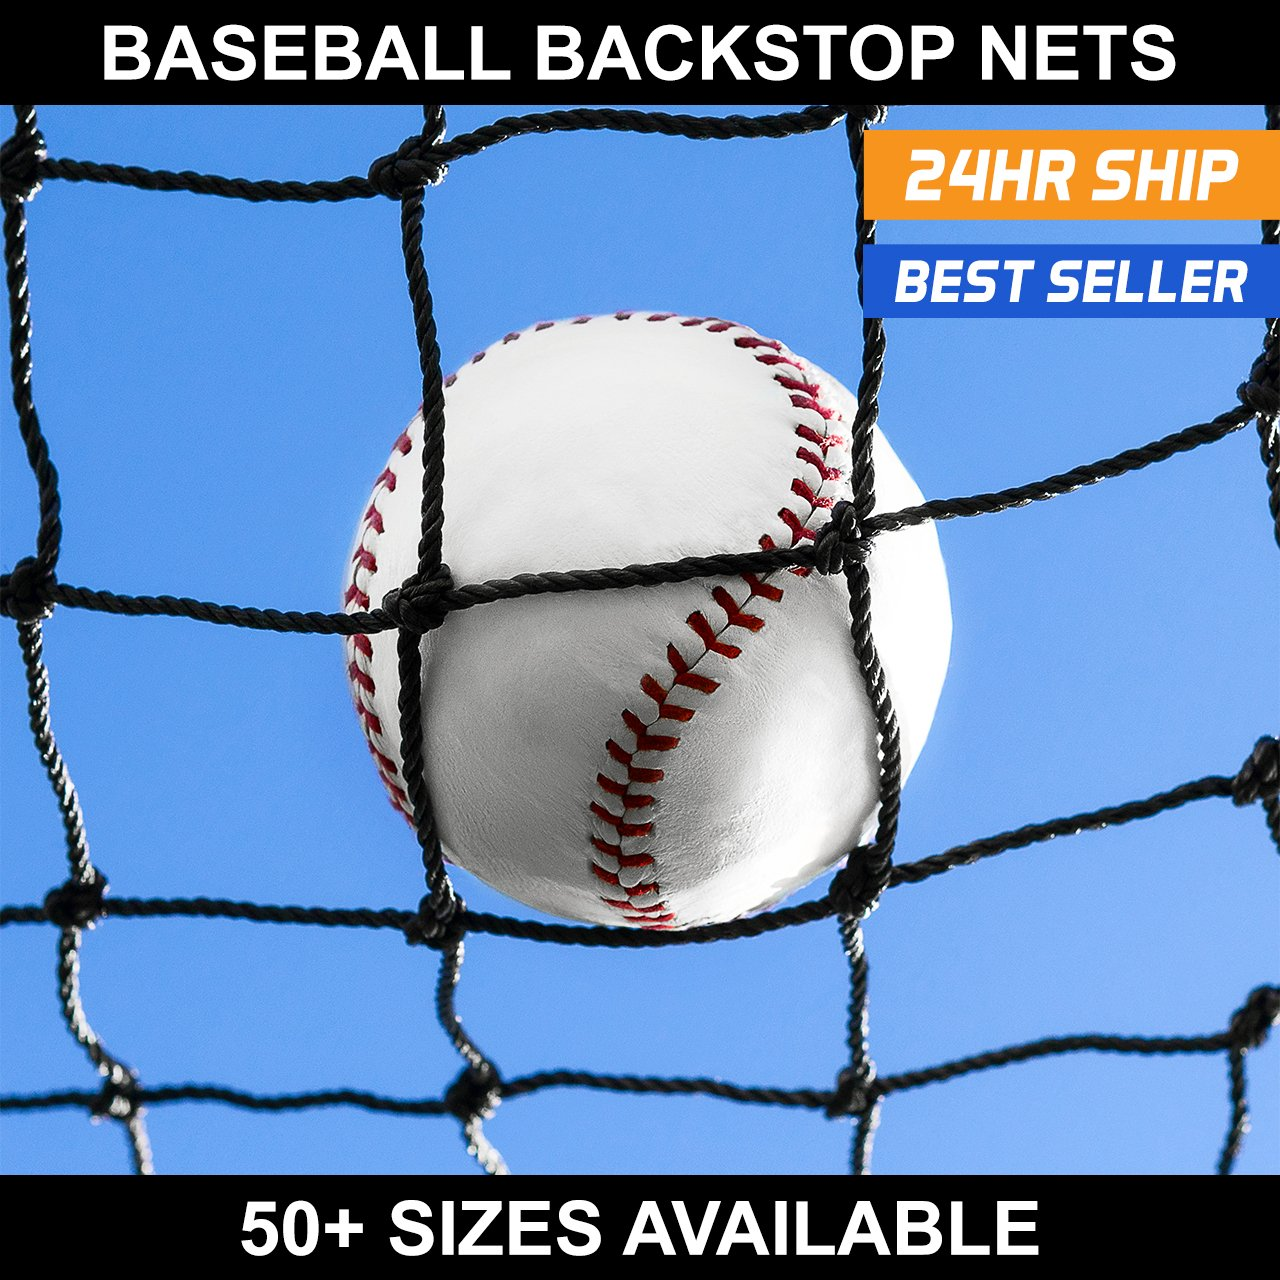 Net World Sports Baseball Backstop Nets - 50 (20. 12' x 72') by Net World Sports